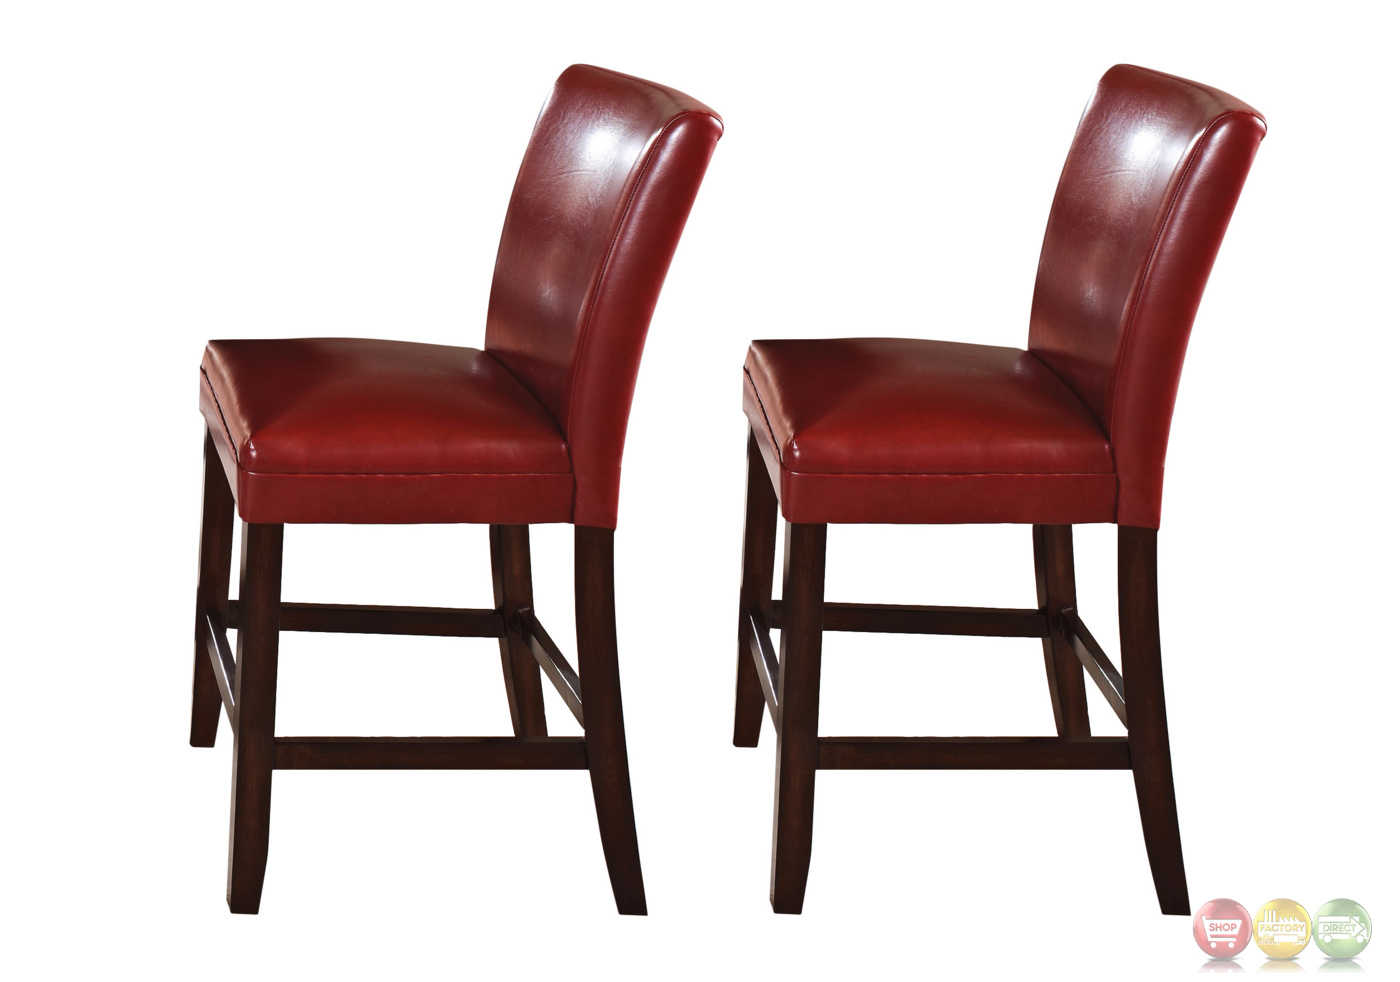 set of 2 hartford red leather upholstered counter height chairs. Black Bedroom Furniture Sets. Home Design Ideas